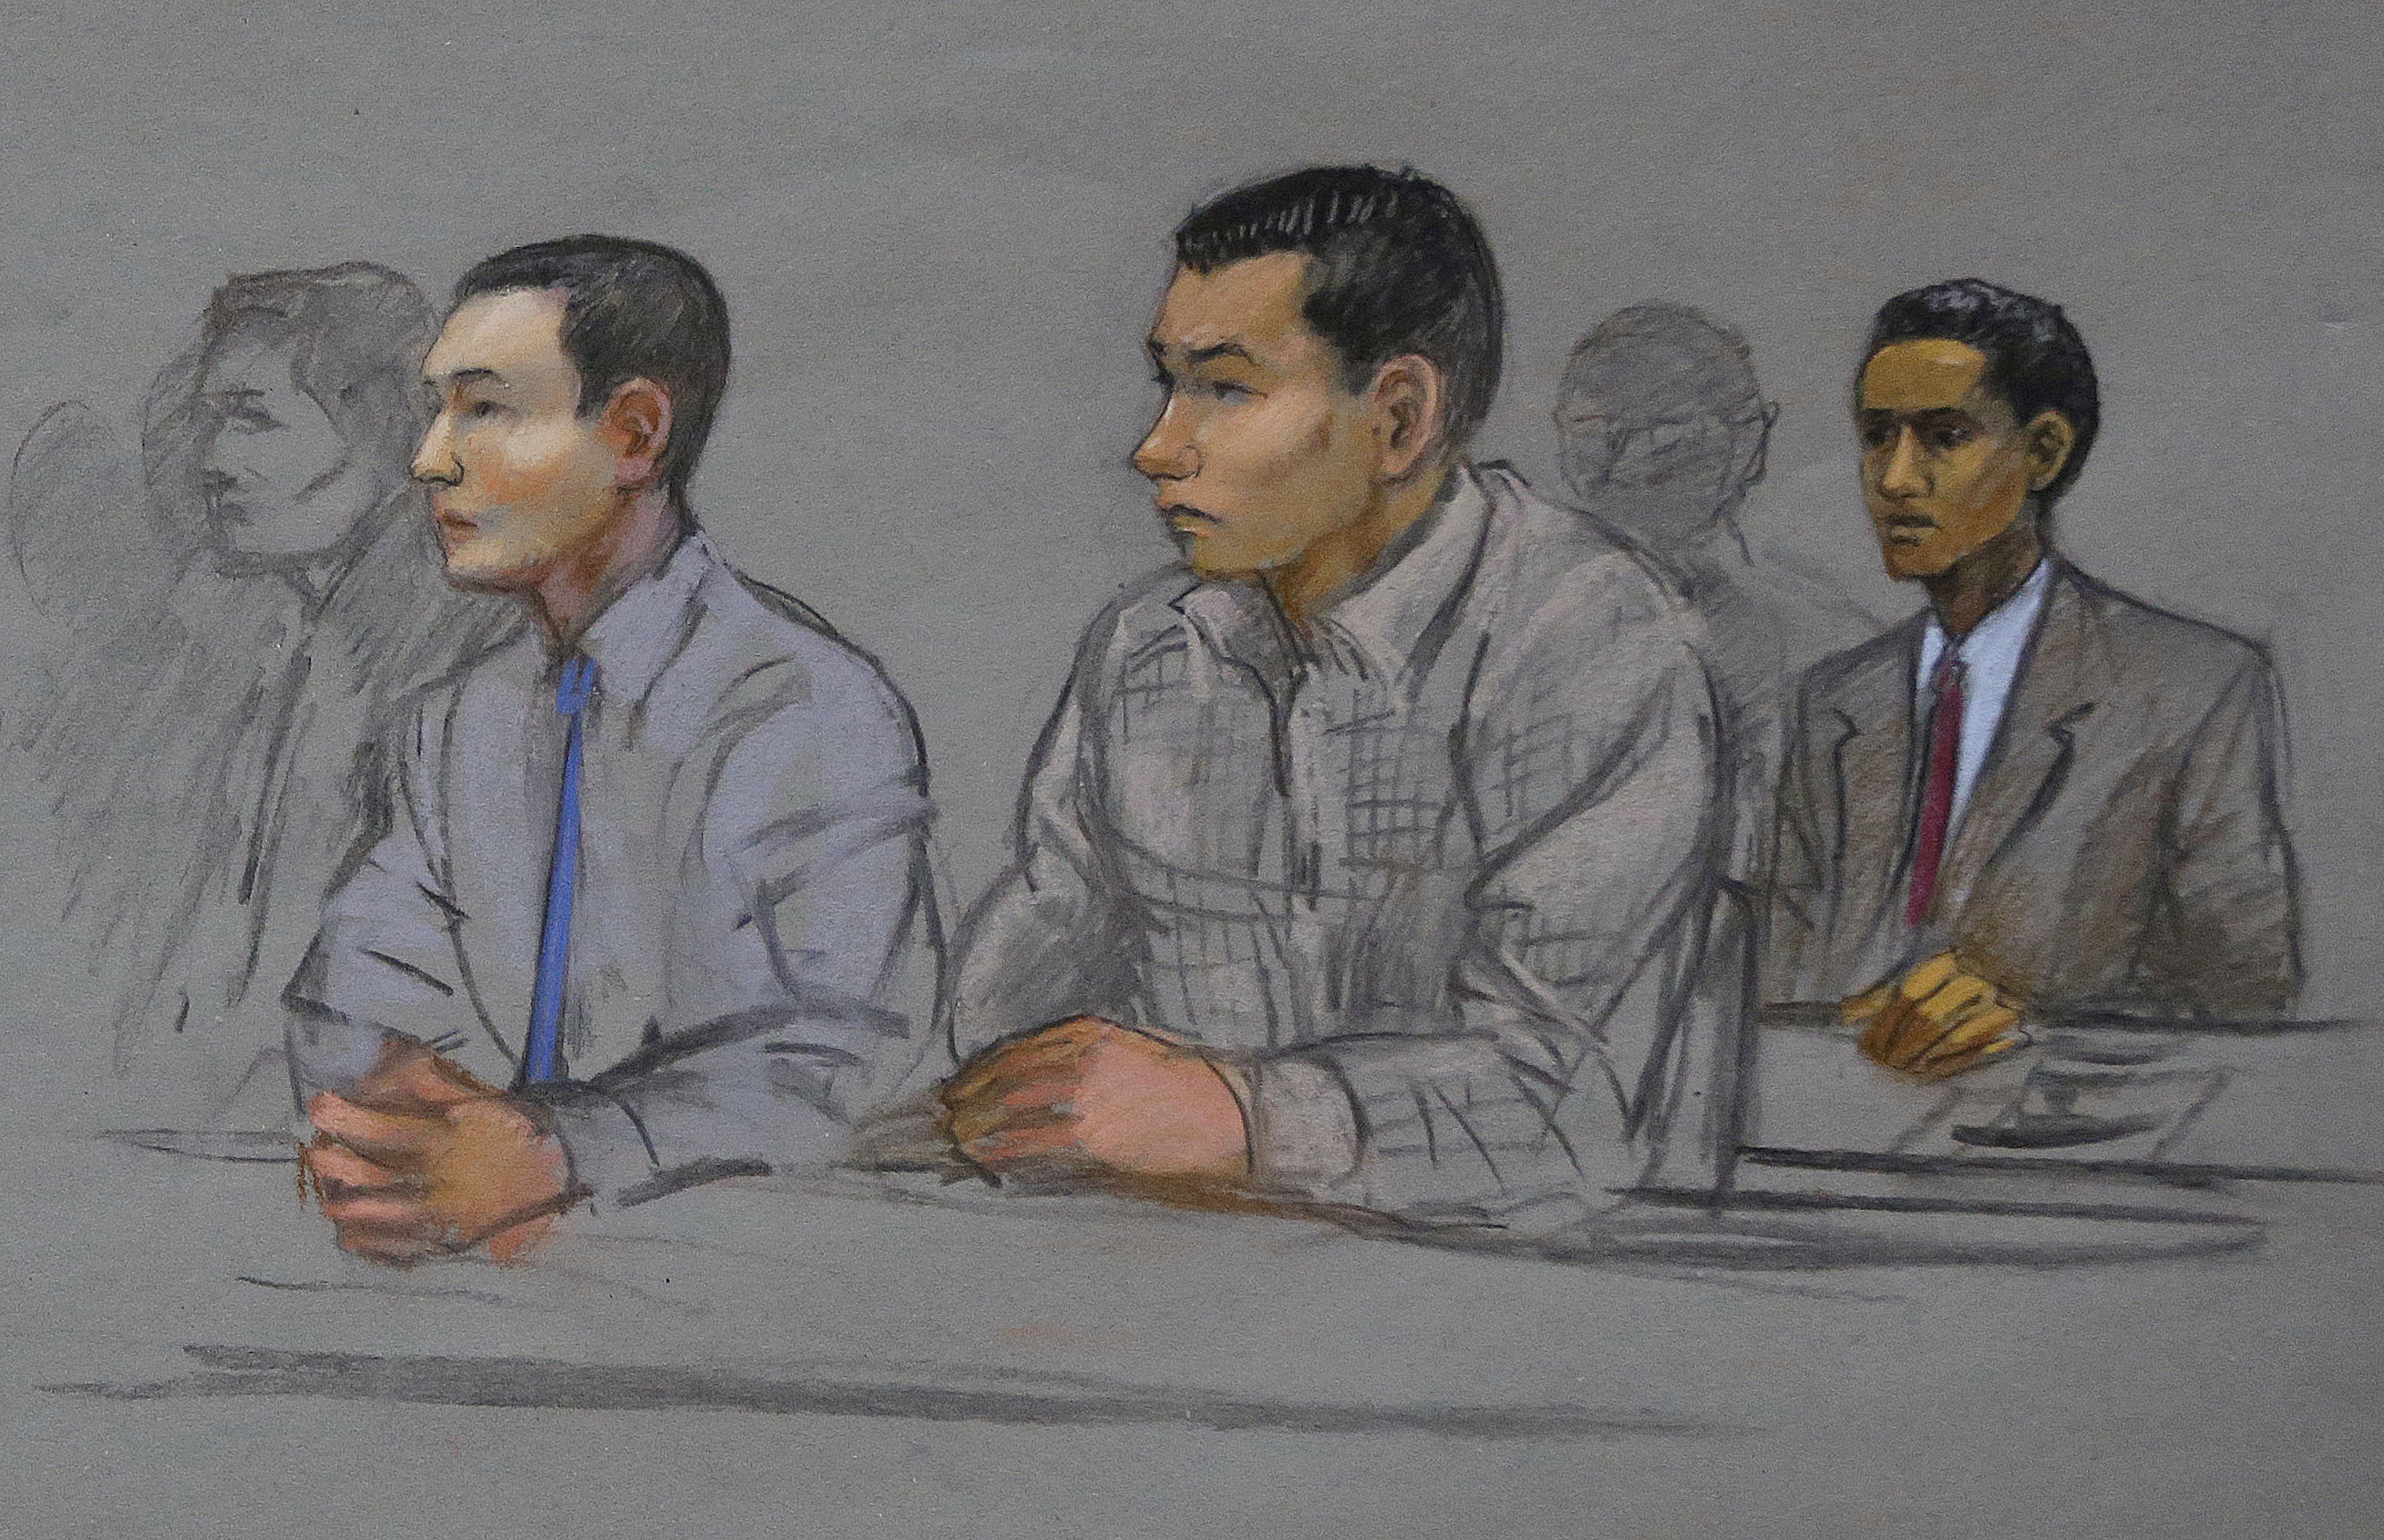 This courtroom sketch shows defendants Azamat Tazhayakov, left, Dias Kadyrbayev, center, and Robel Phillipos, right, college friends of Boston Marathon bombing suspect Dzhokhar Tsarnaev, during a hearing in federal court Tuesday, May 13, 2014, in Boston.